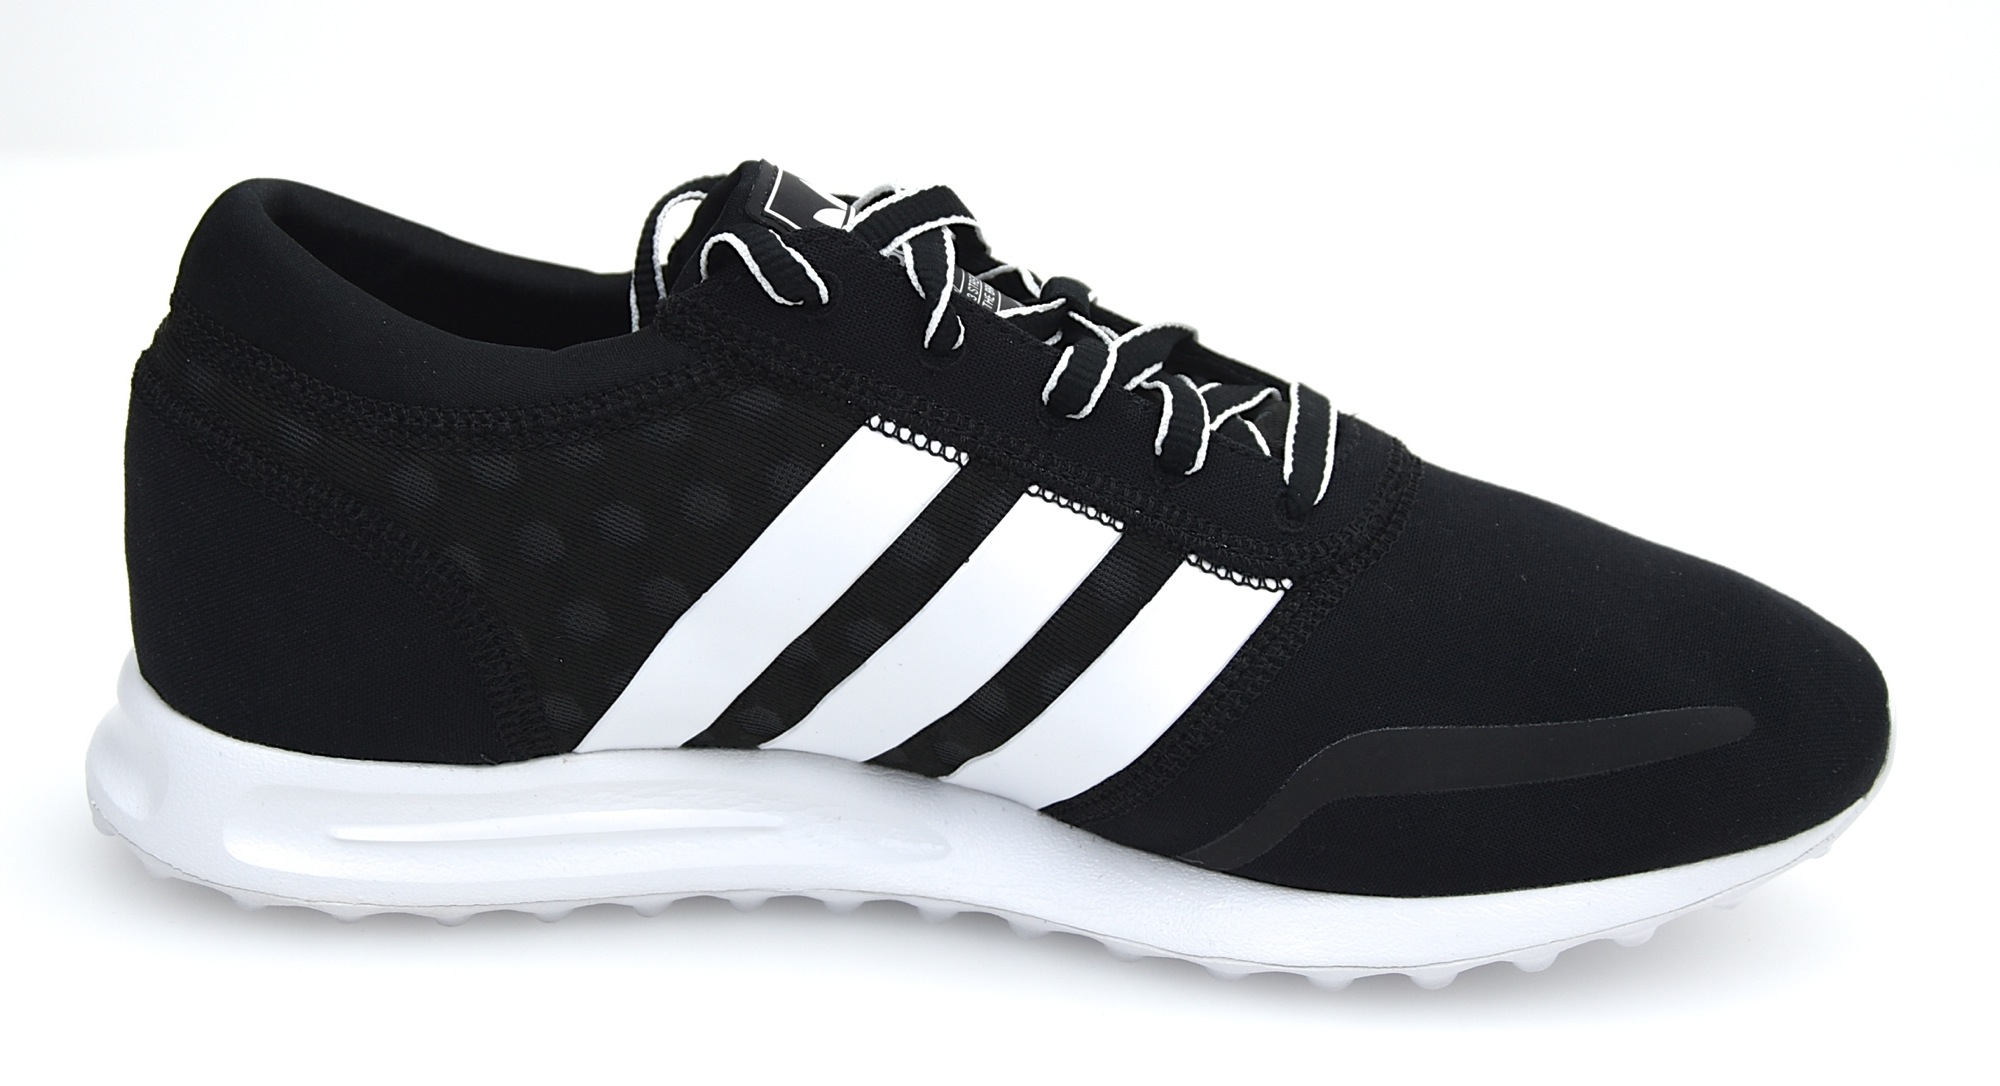 Details about ADIDAS WOMAN SNEAKER SHOES CASUAL FREE TIME CODE LOS ANGELES  W S79758 - S76575 642adaea7d4cf